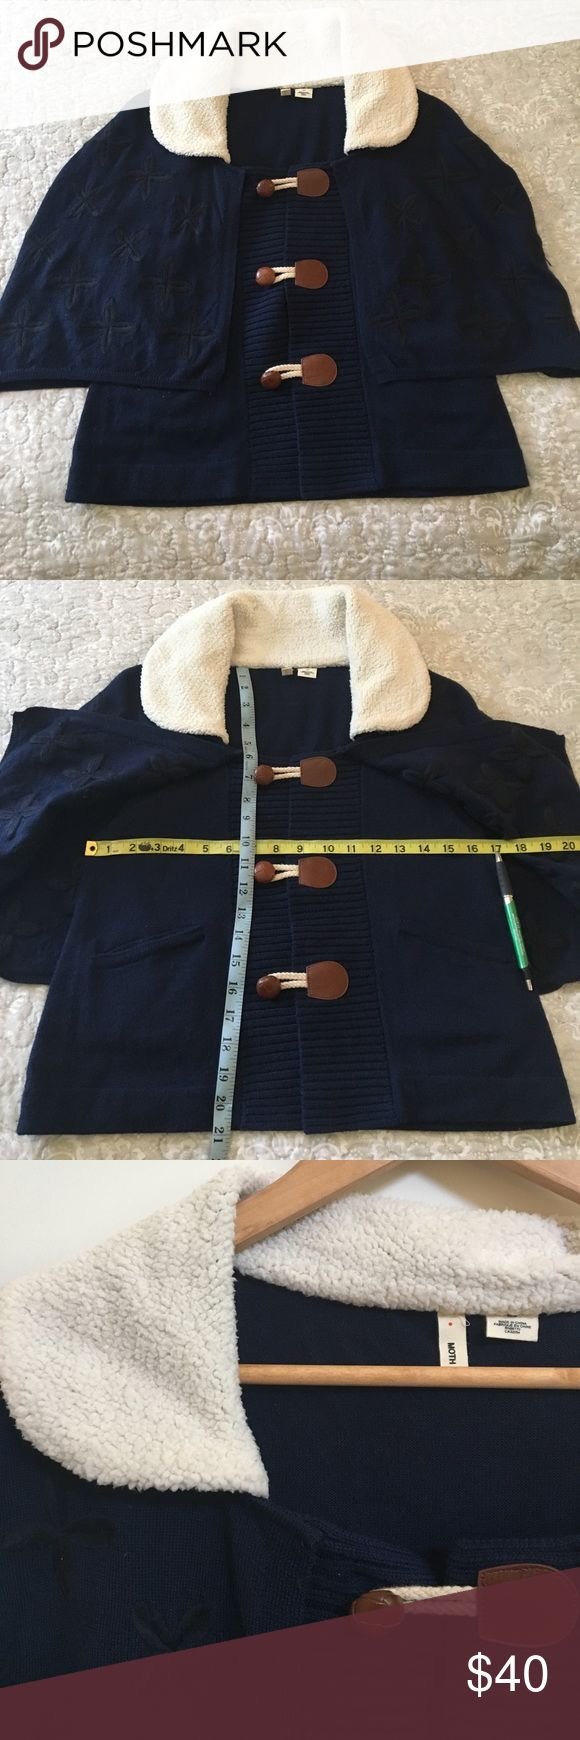 Anthropologie Moth Navy Sweater Cape Anthropologie Moth Navy Sweater Cape. Removable black flower embroidered cape. Removable wool collar. Three button closure. Two front pockets. Last pic show small holes. Can be easily sewn up and unnoticeable. Anthropologie Sweaters Shrugs & Ponchos